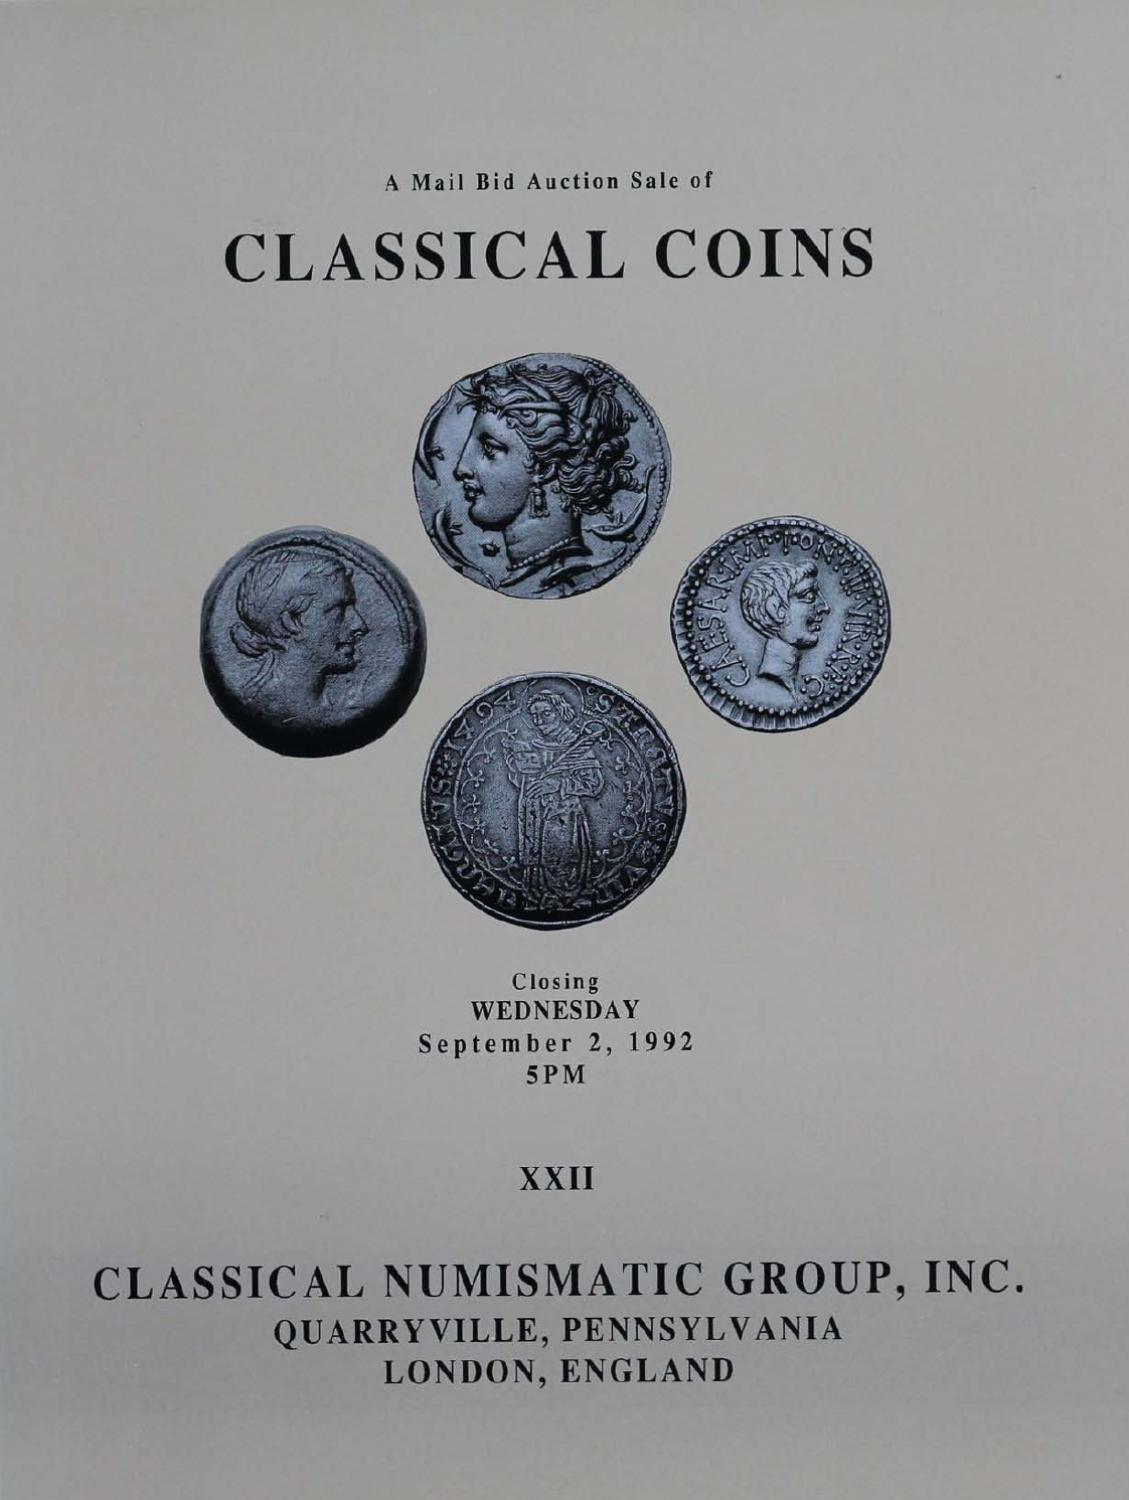 Cng Xxii By Classical Numismatic Group Inc Issuu 1990 Lincoln Mark Vii Wiring Diagram For Etac System